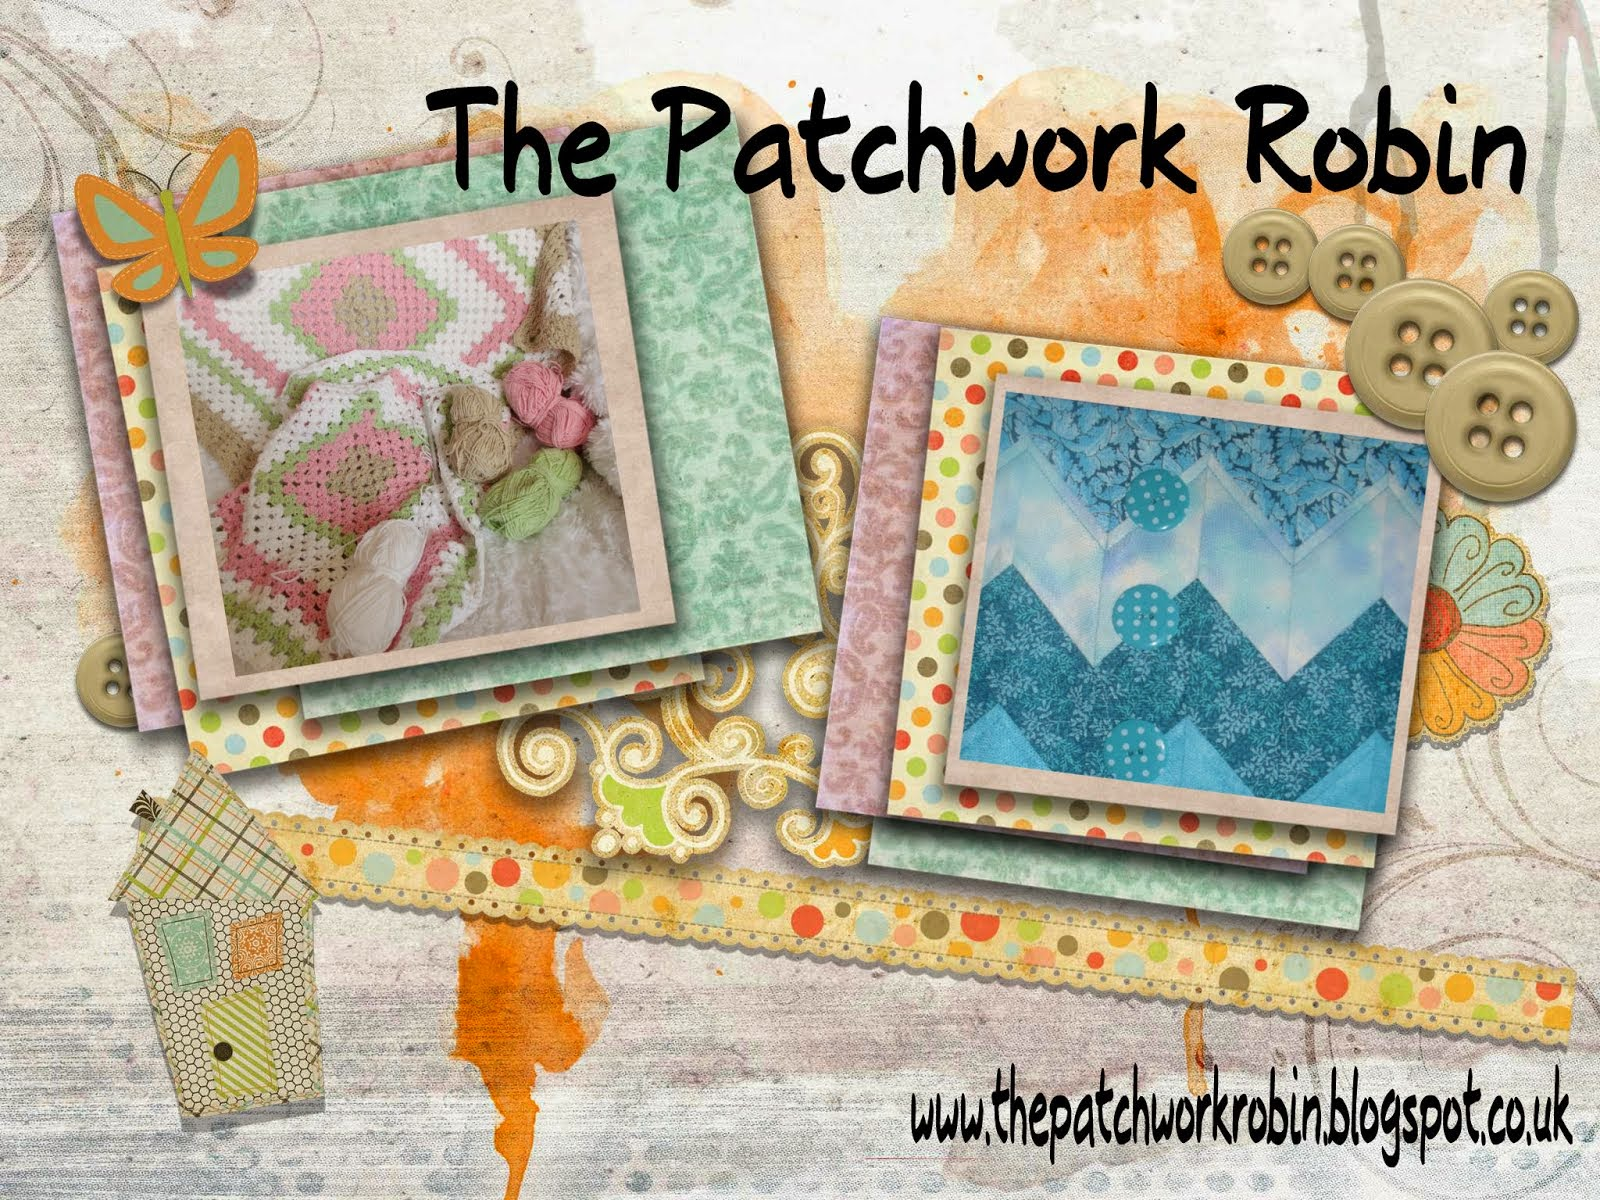 The Patchwork Robin